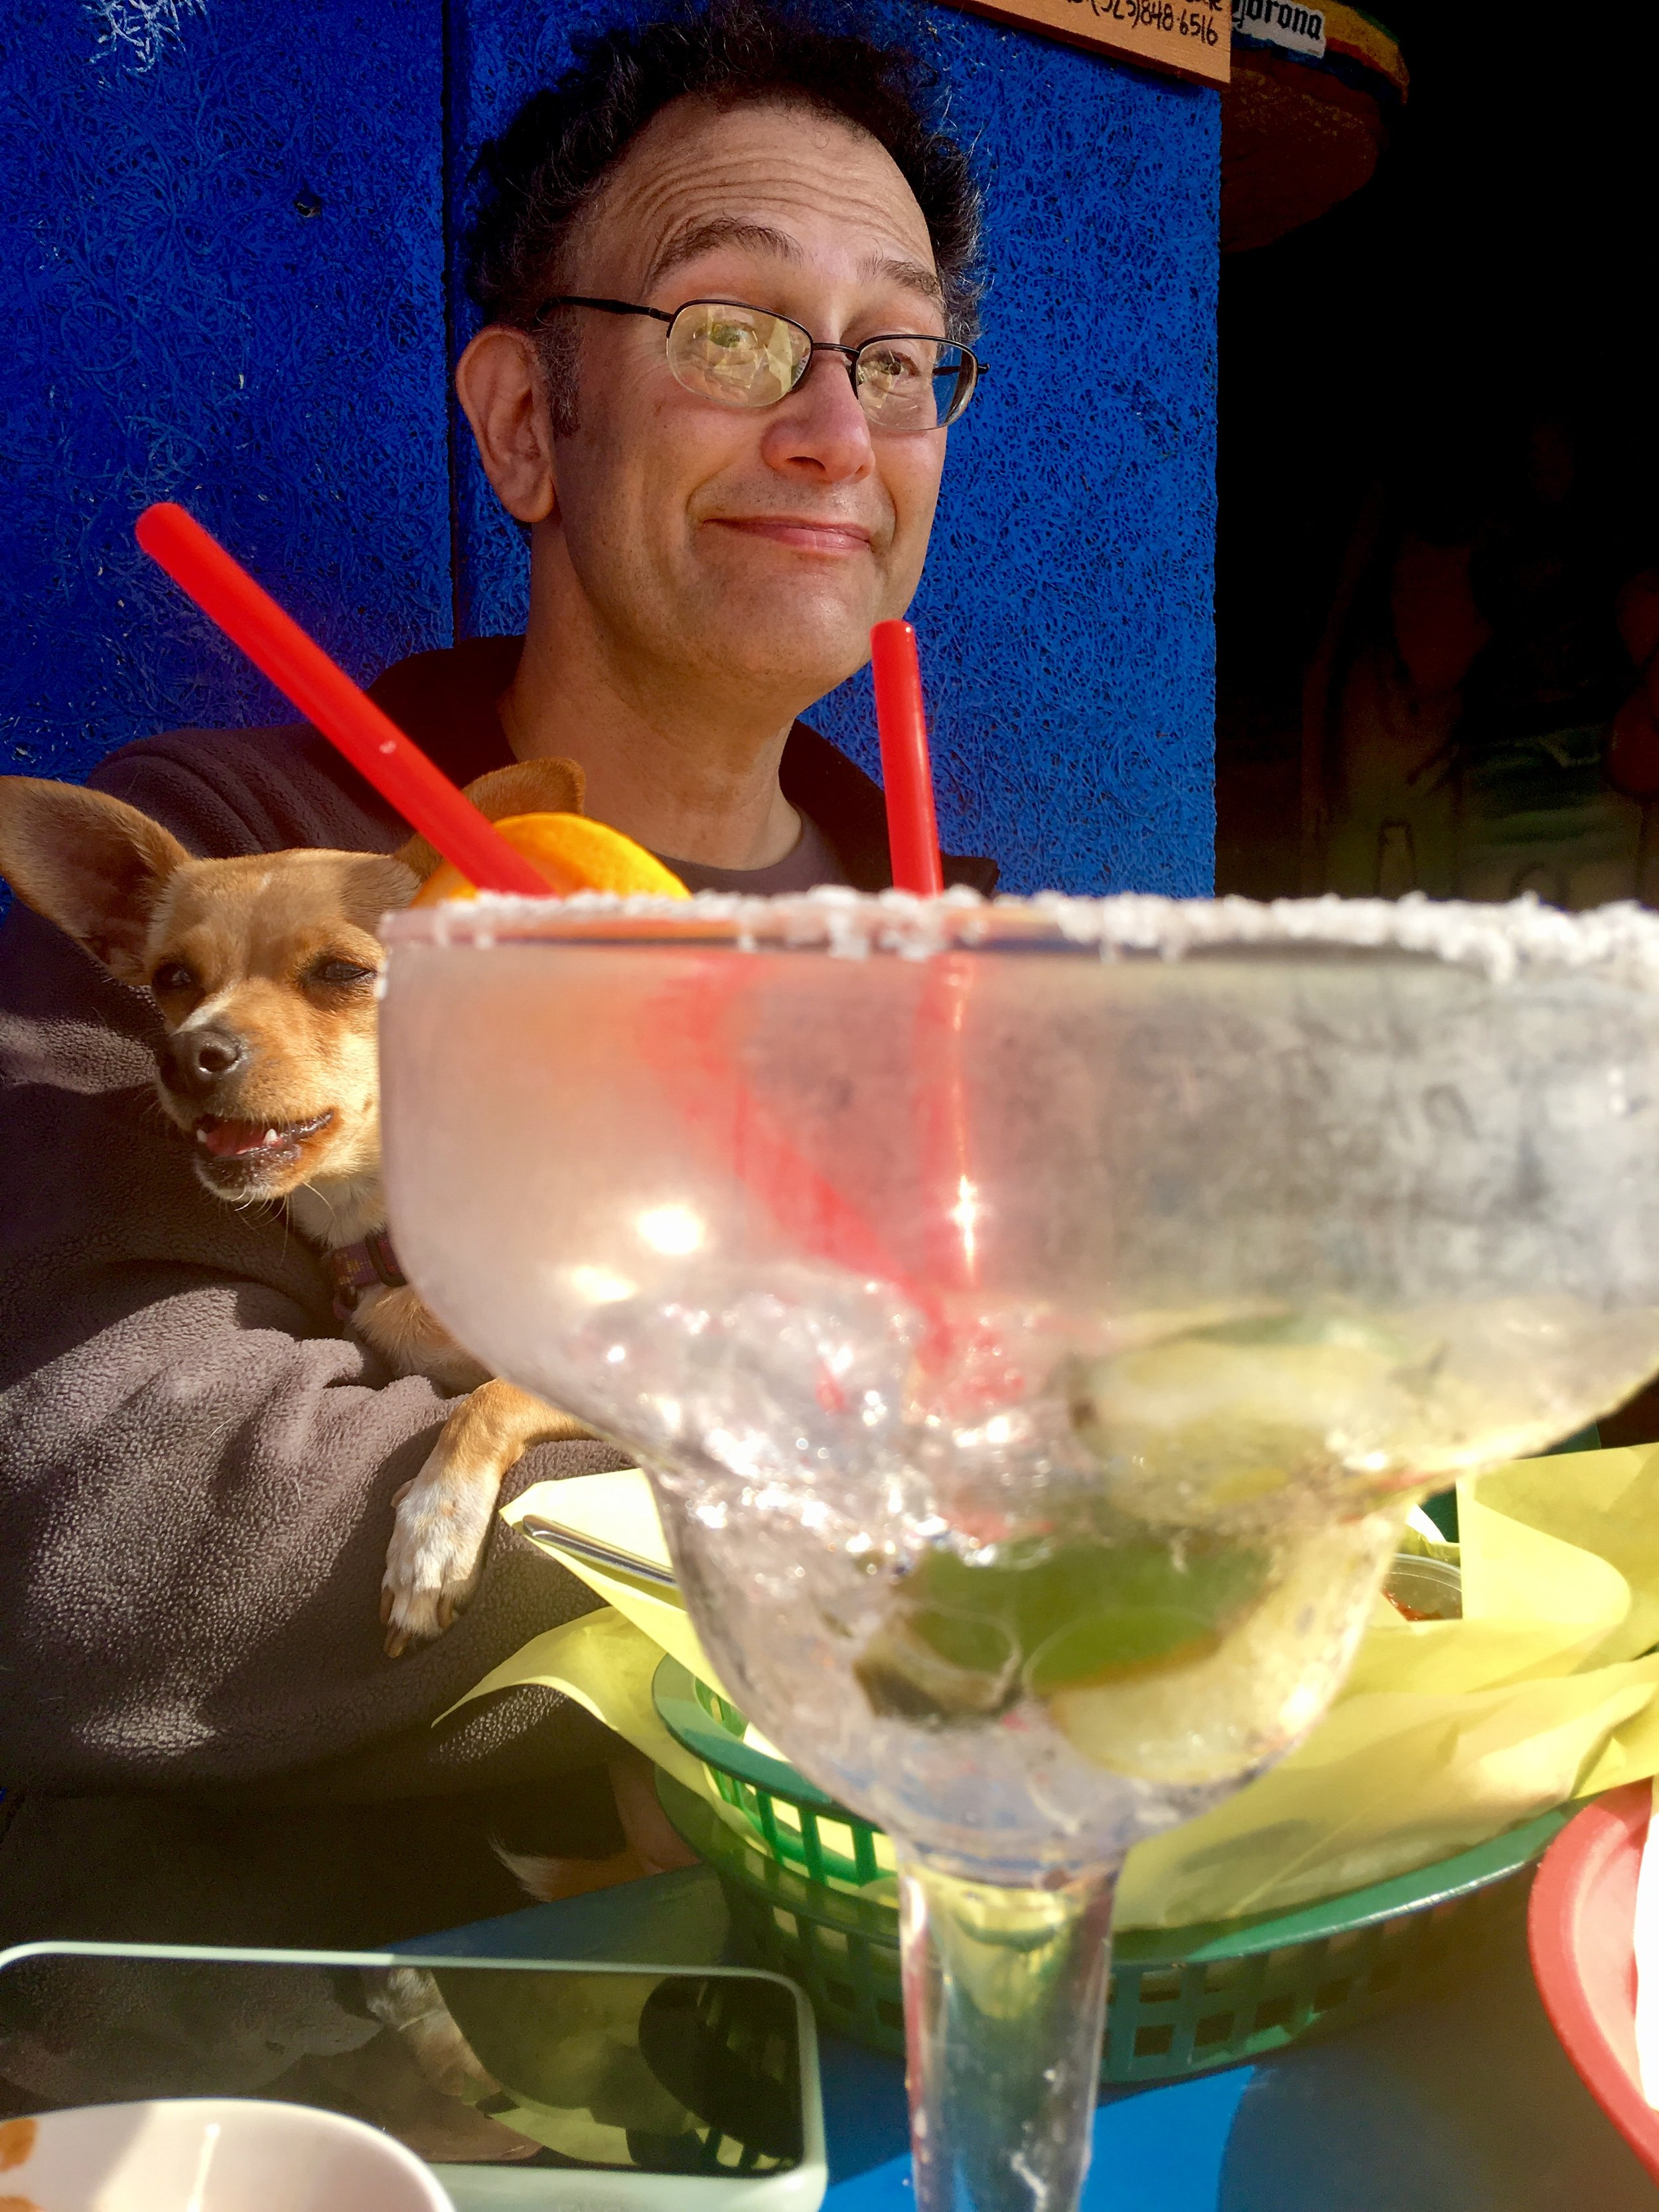 Lucy trying to get in on the Margarita action.